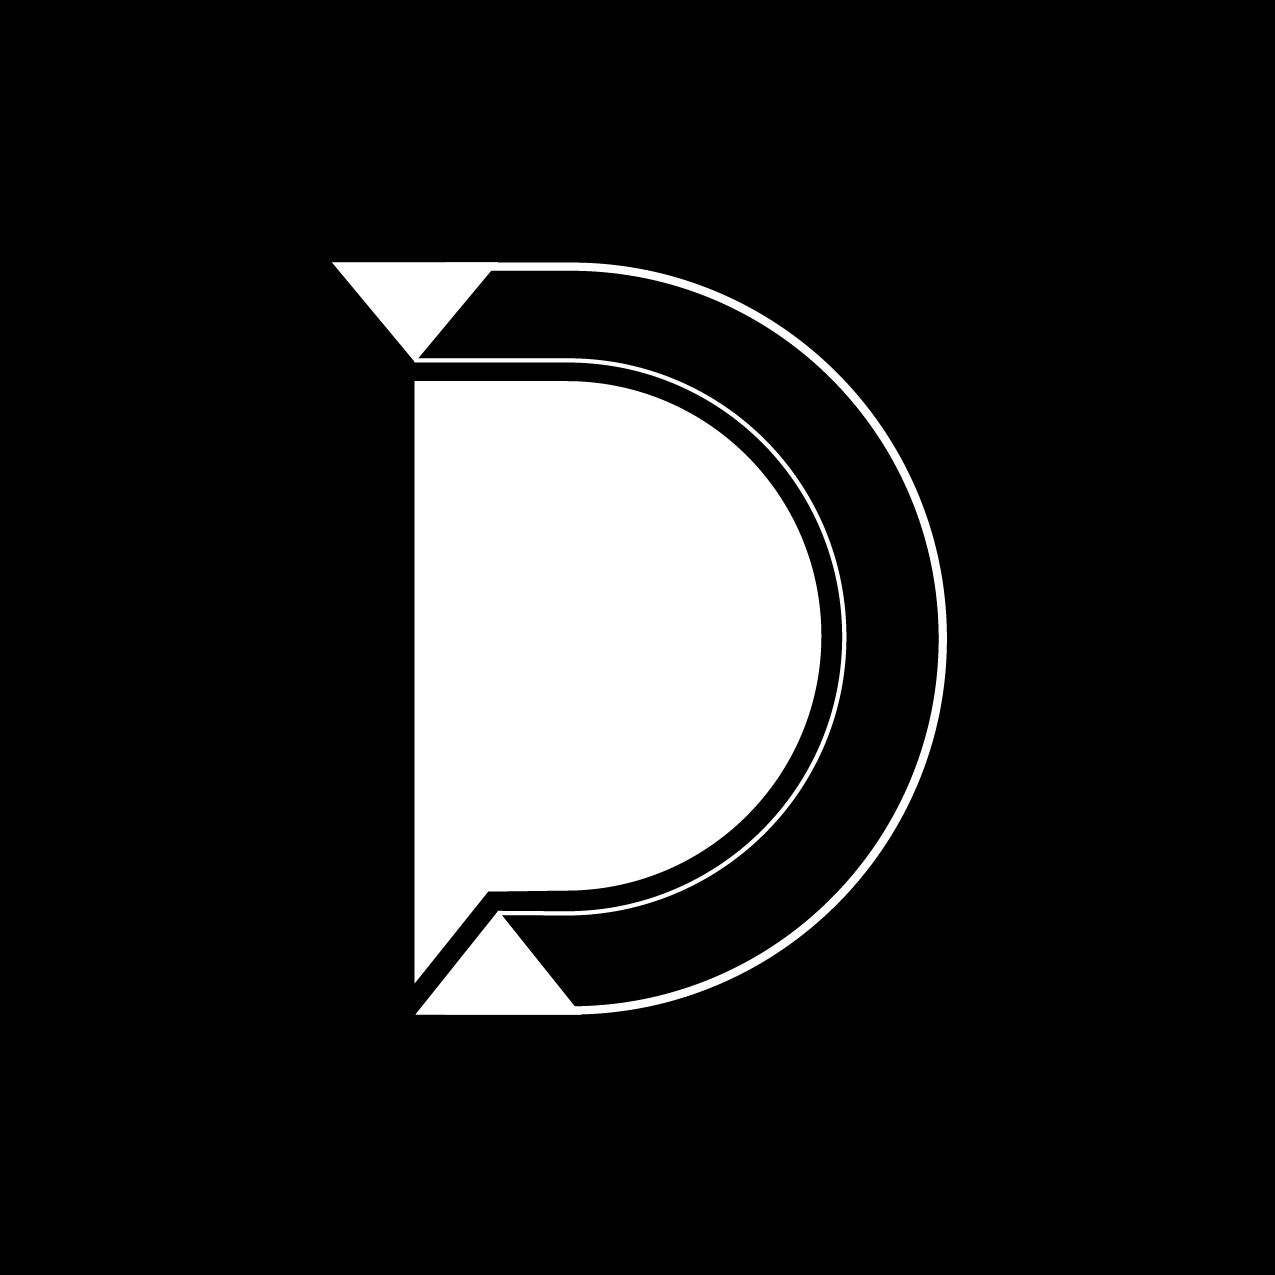 Letter D6 design by Furia